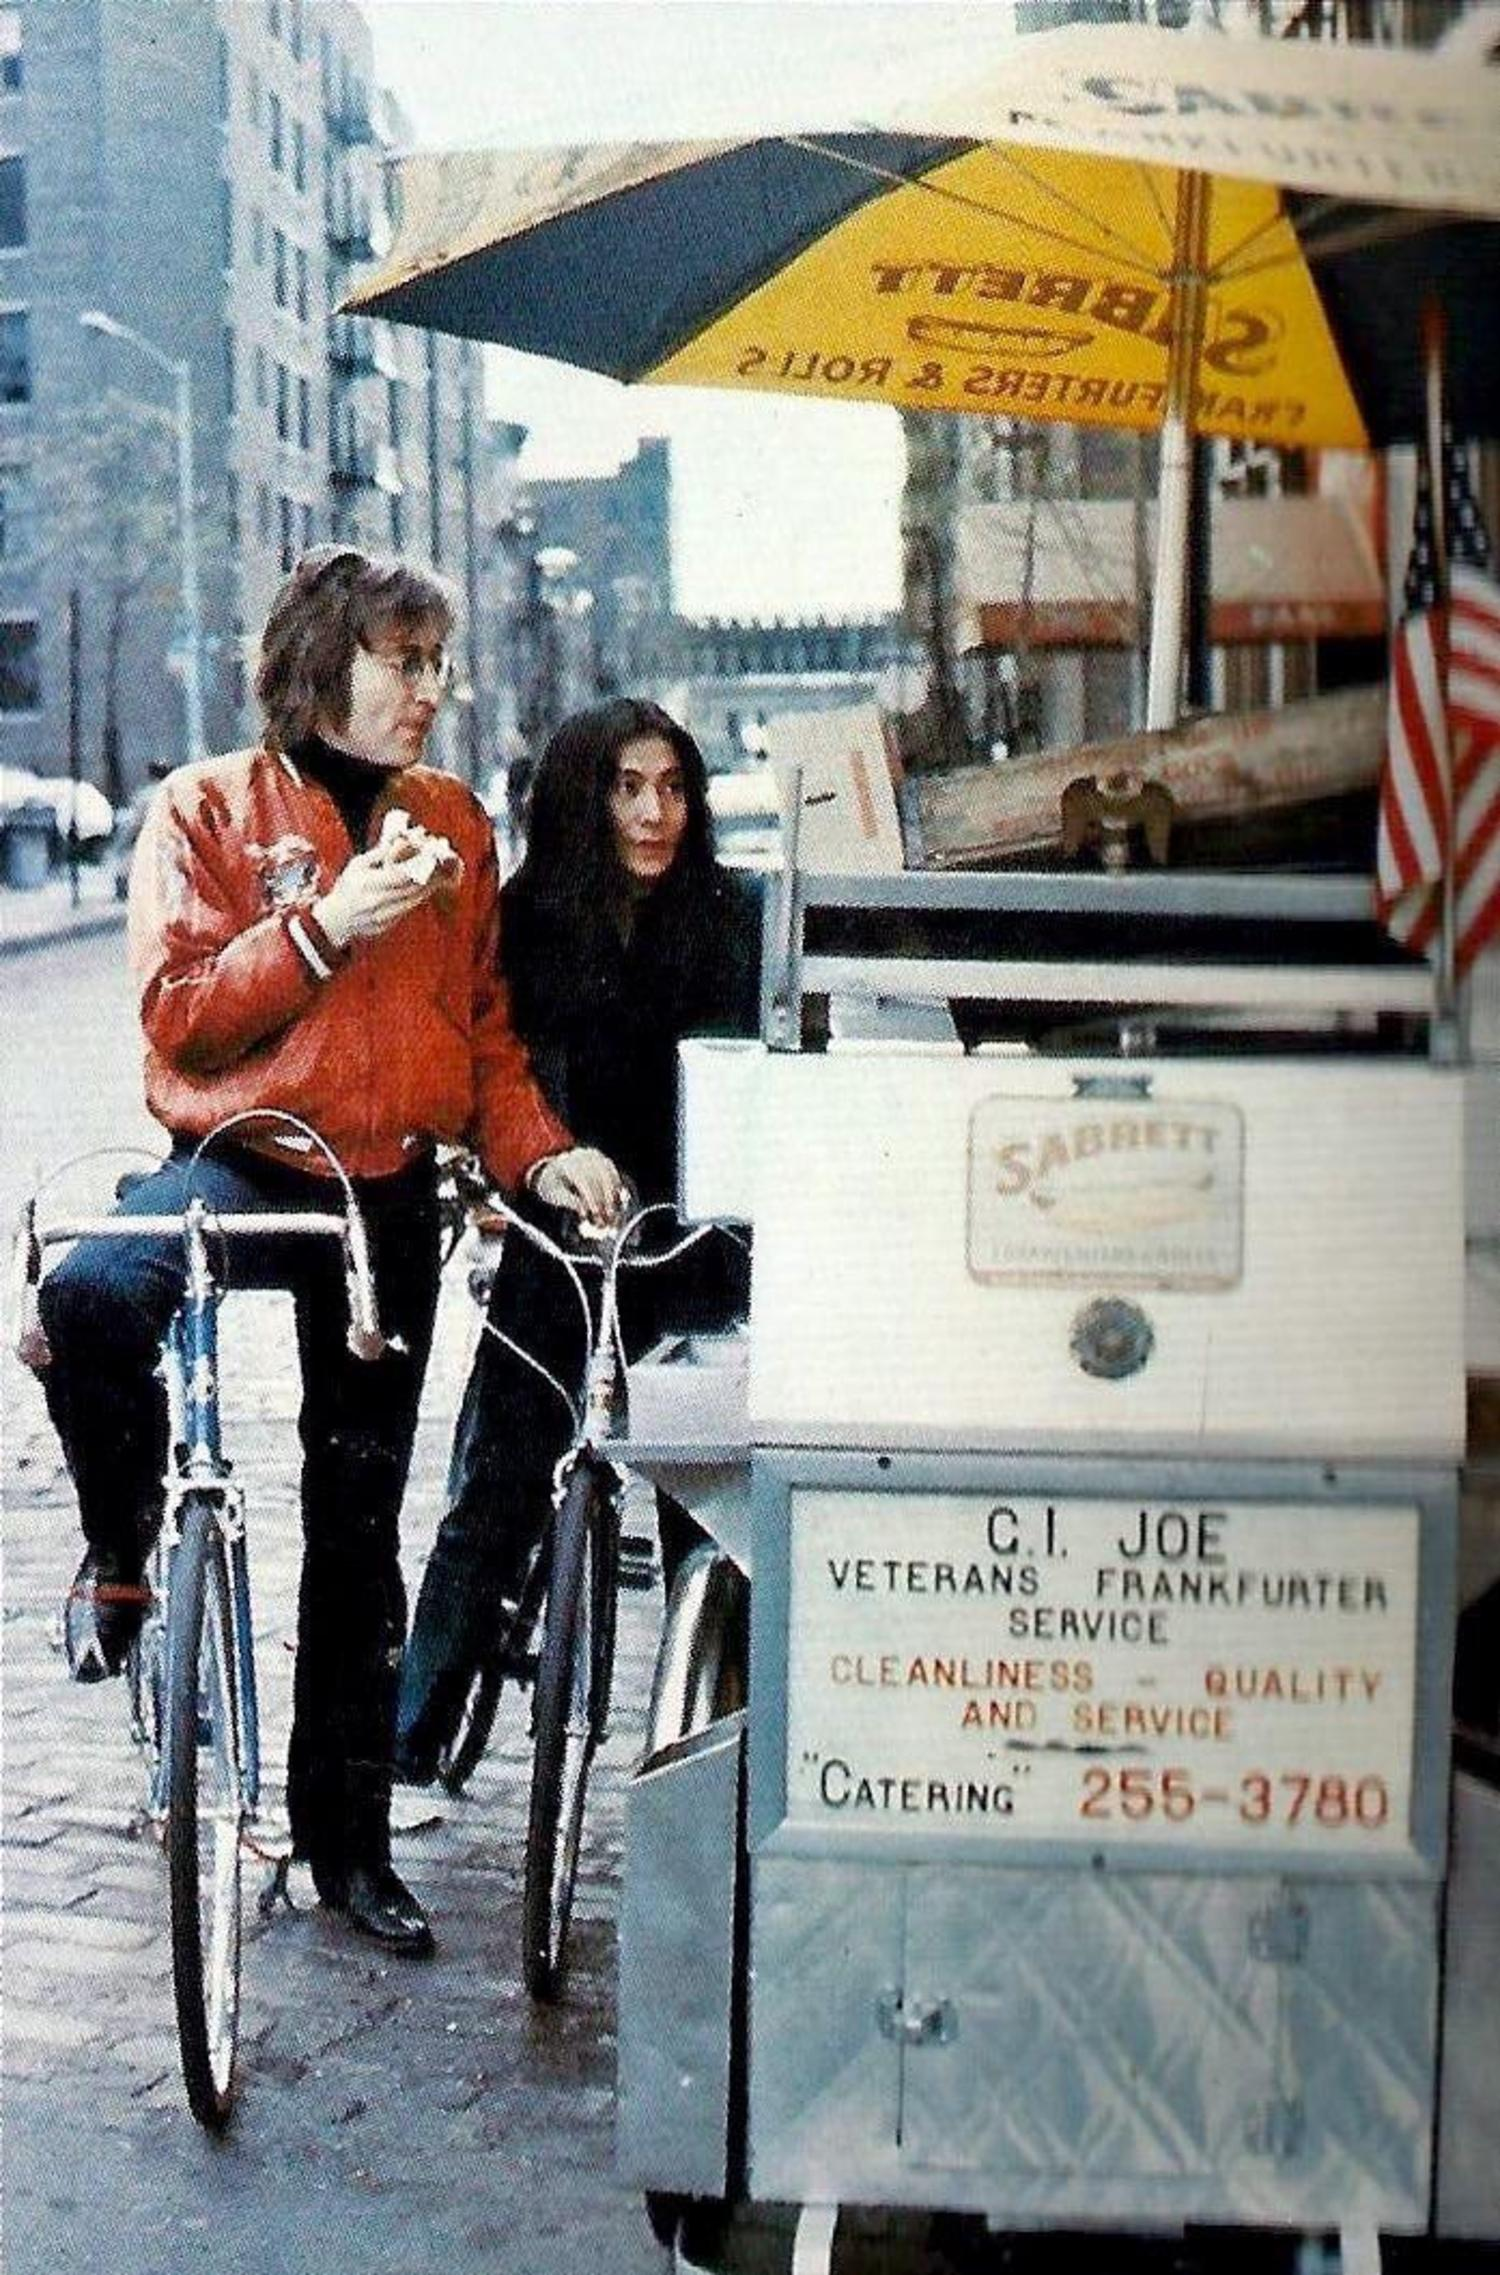 Vintage Photograph Of John Lennon And Yoko Ono Buying A Hot Dog From A Nyc Street Cart In 1972 Viewing Nyc